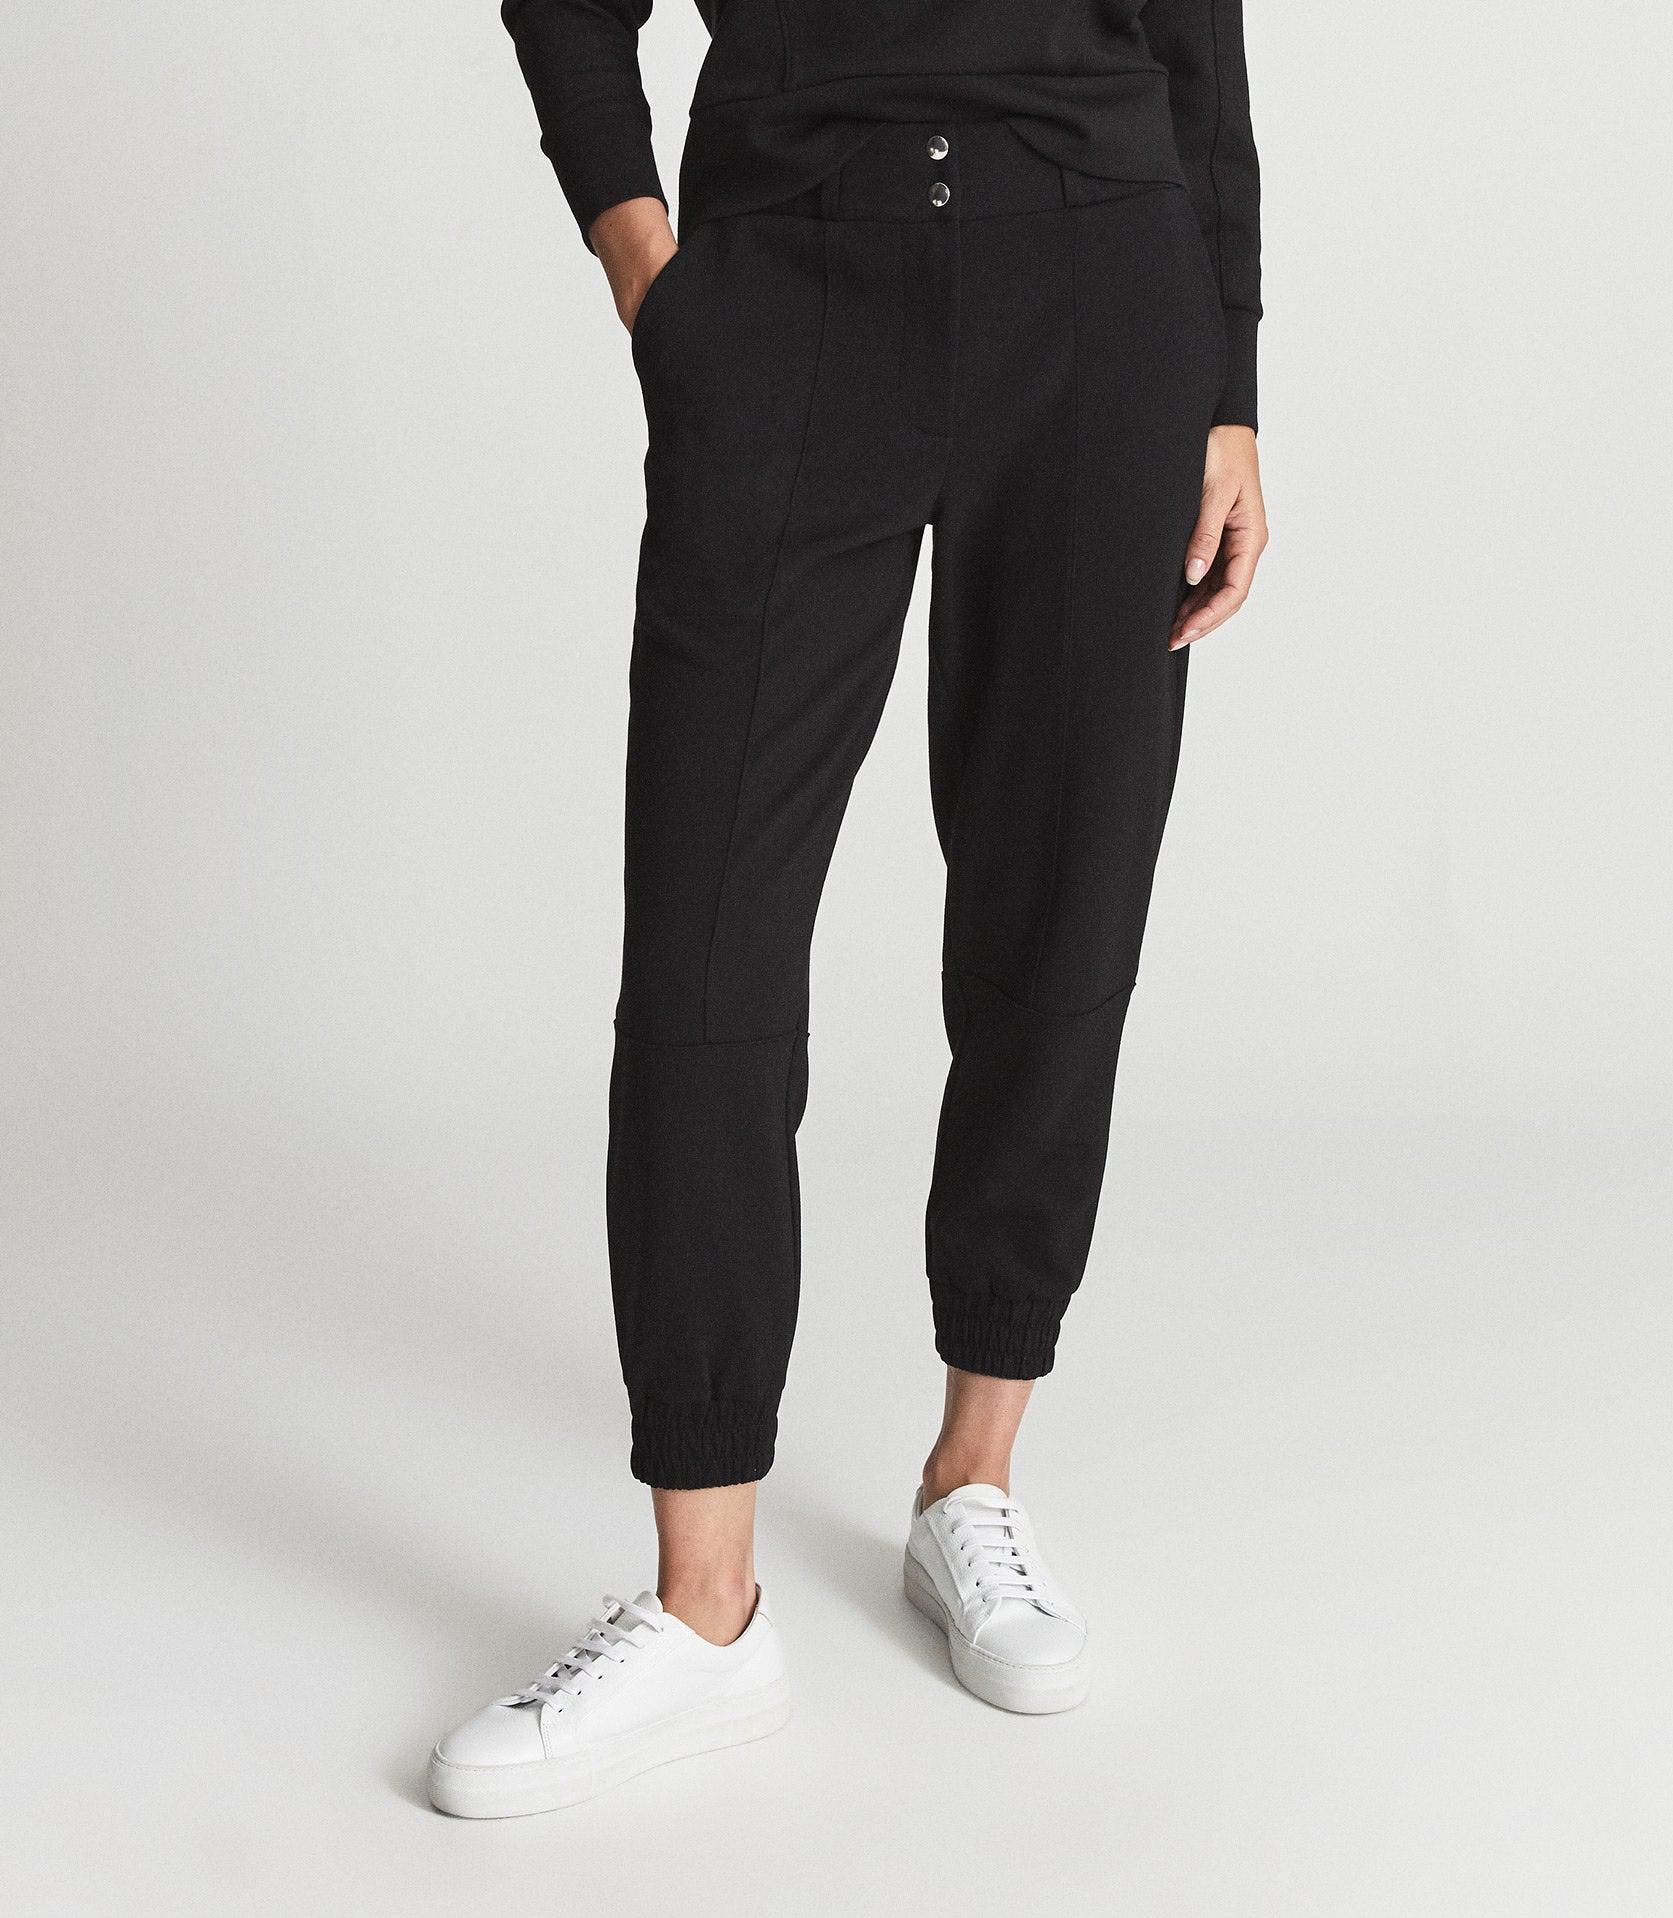 MANDY - TAILORED JOGGERS 1